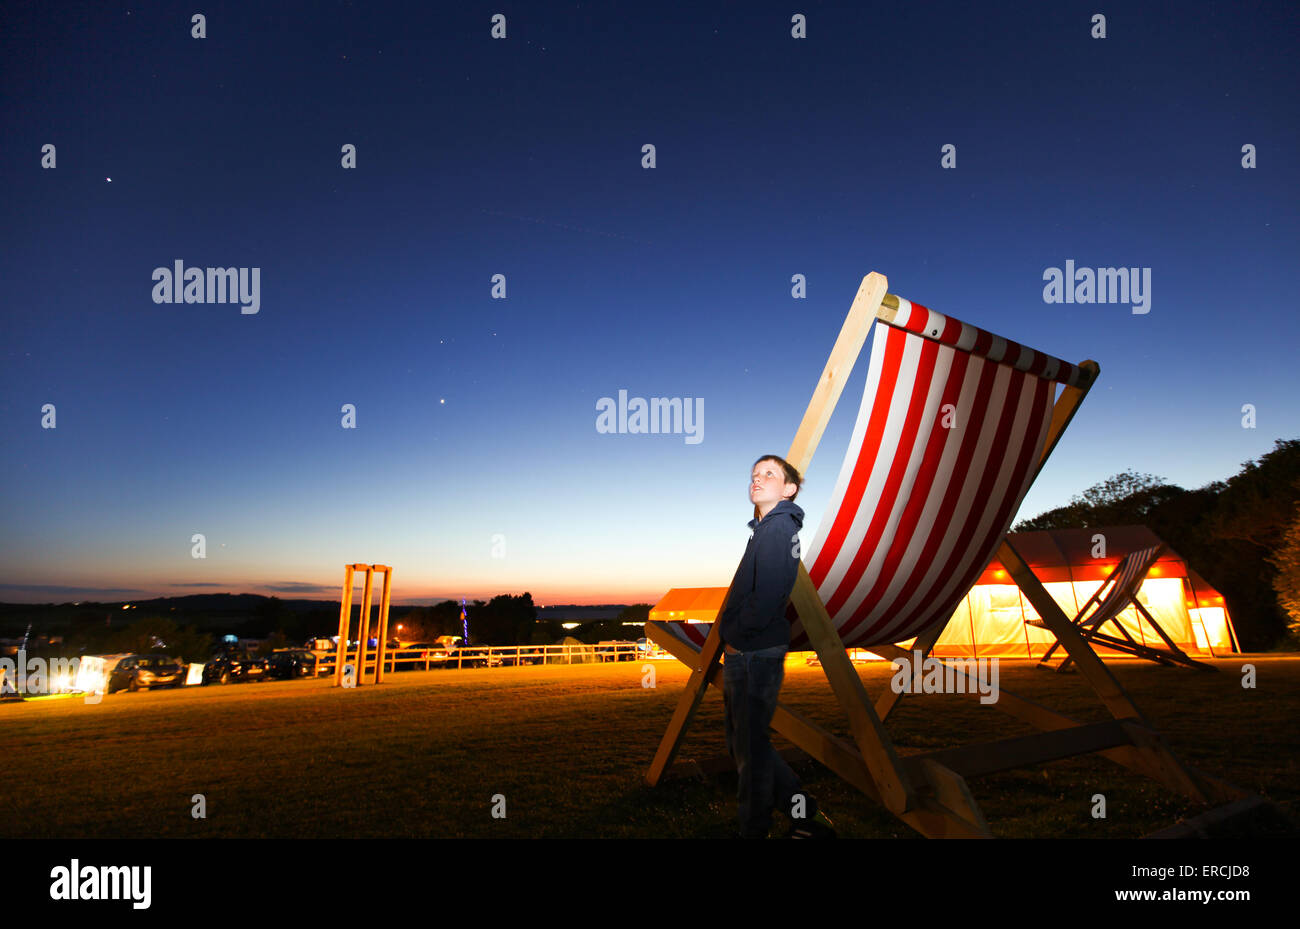 a boy looks up to the stars on a clear night whilst leaning against a giant deckchair - Stock Image